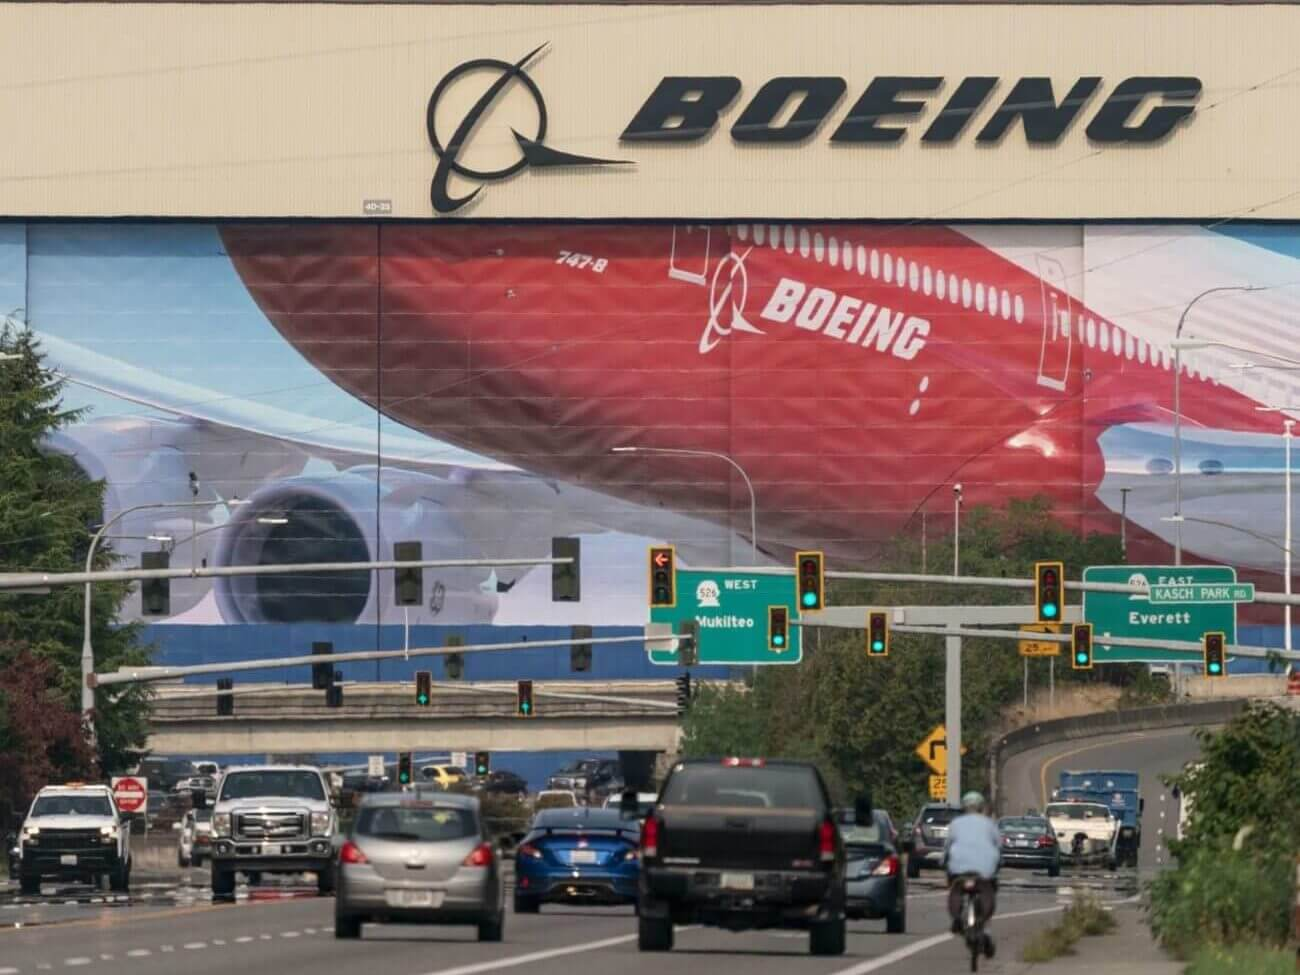 Boeing Is the Latest Firm to Accumulate away a Adversarial Alternate Atmosphere